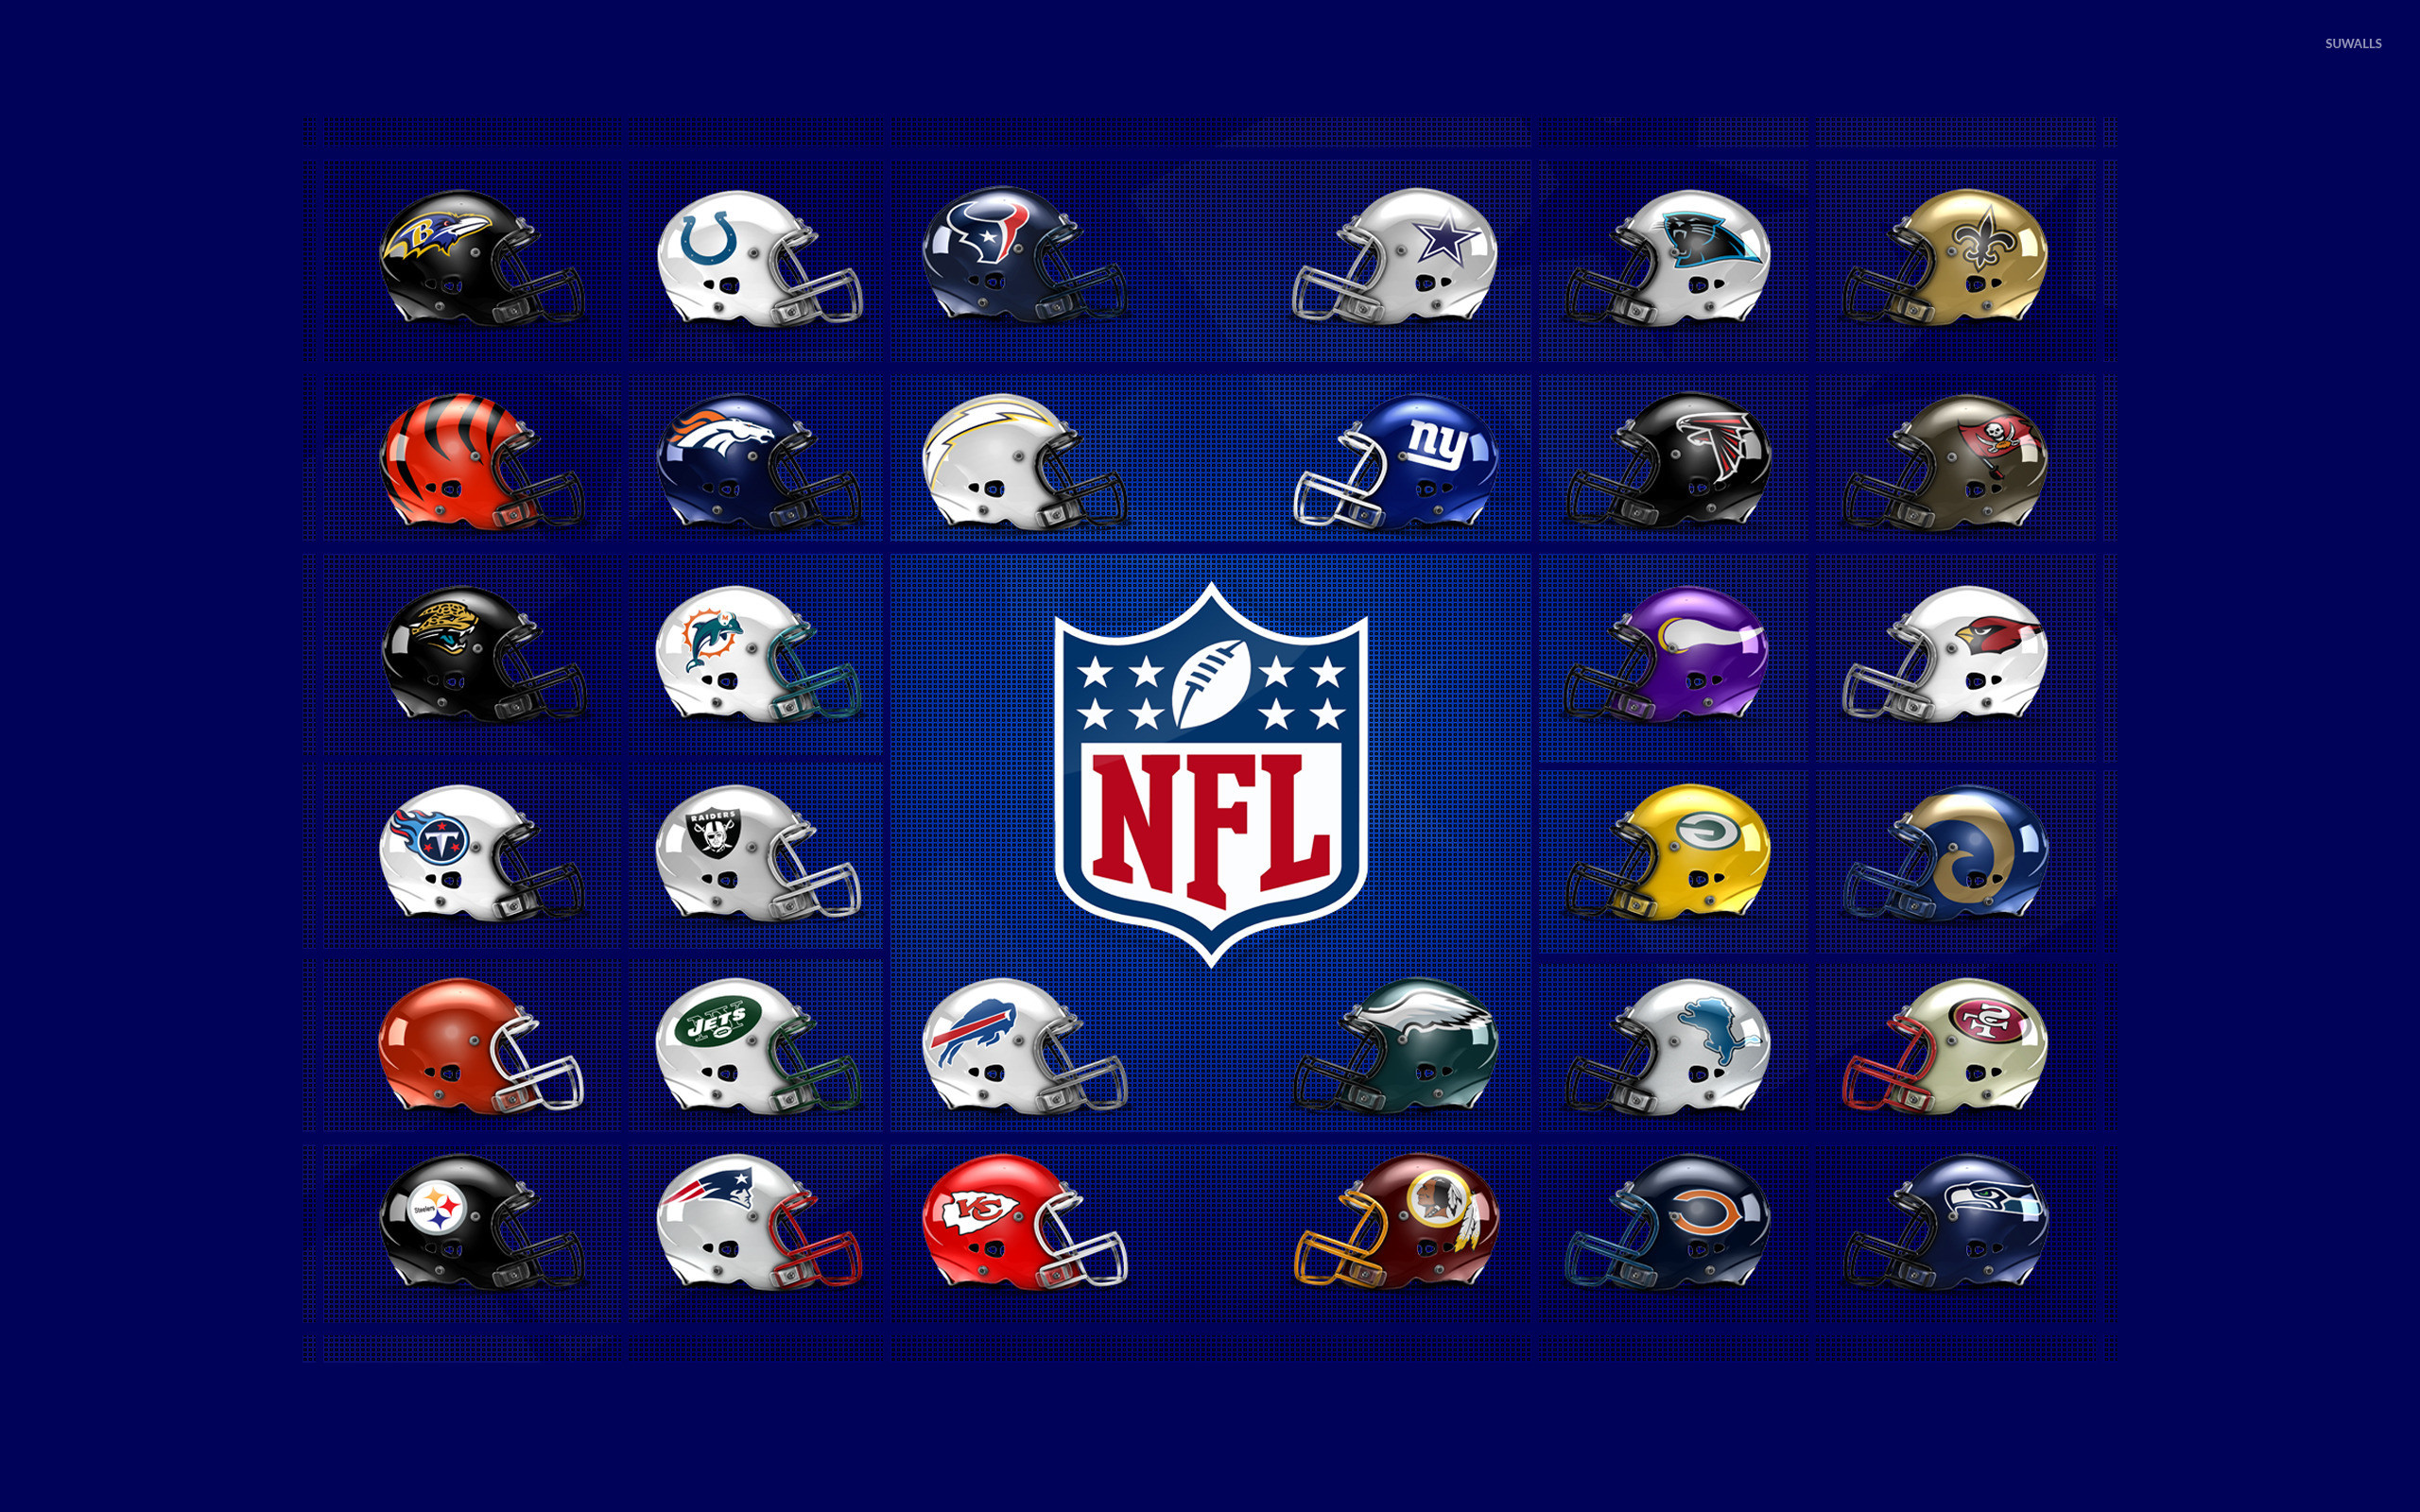 2560x1600 NFL Logos wallpaper  jpg